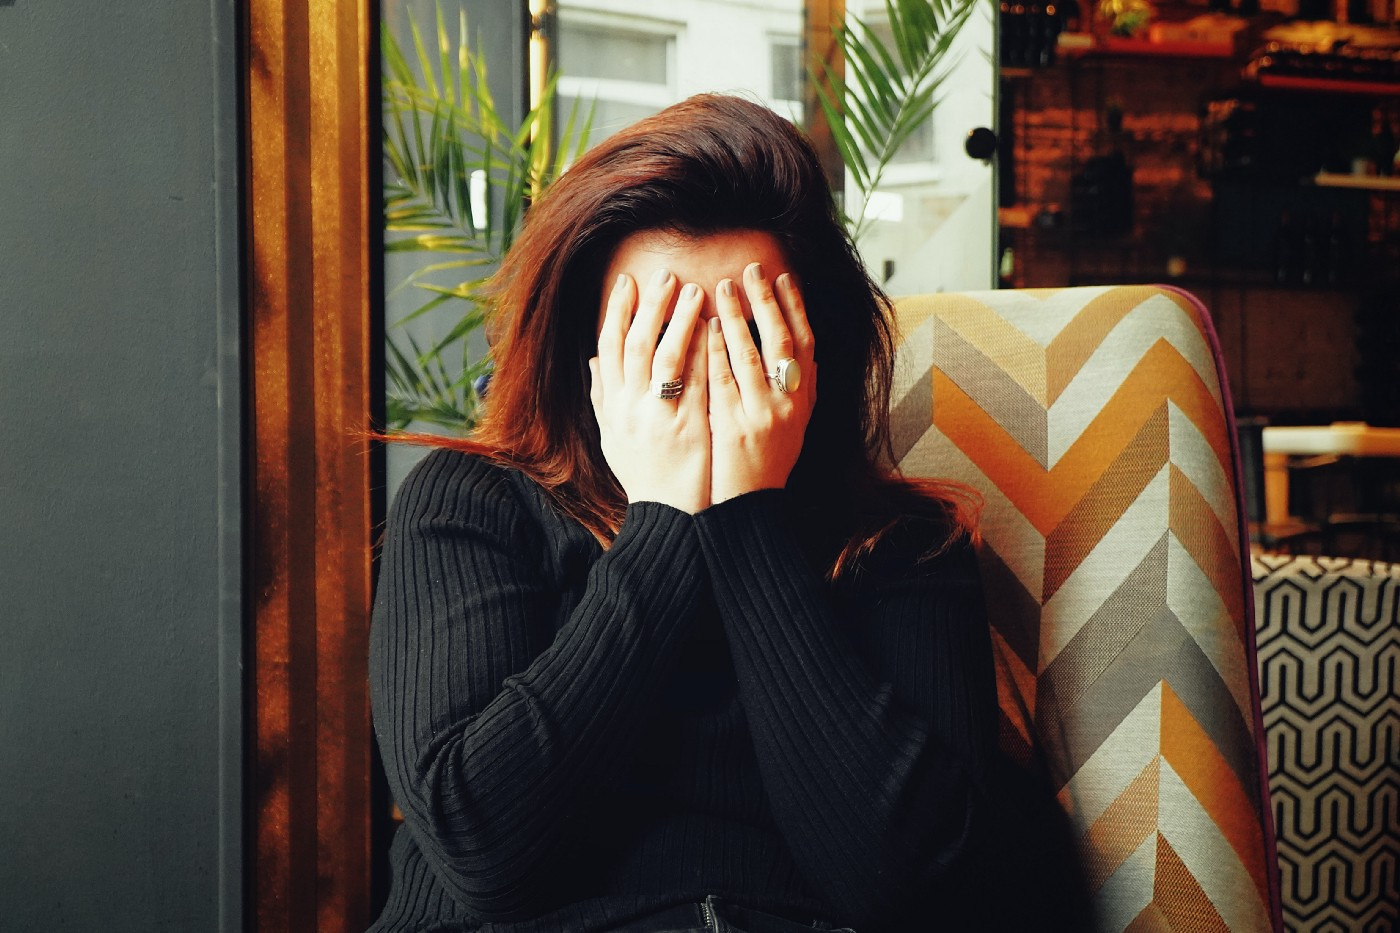 Woman in a black jumper covering her face.